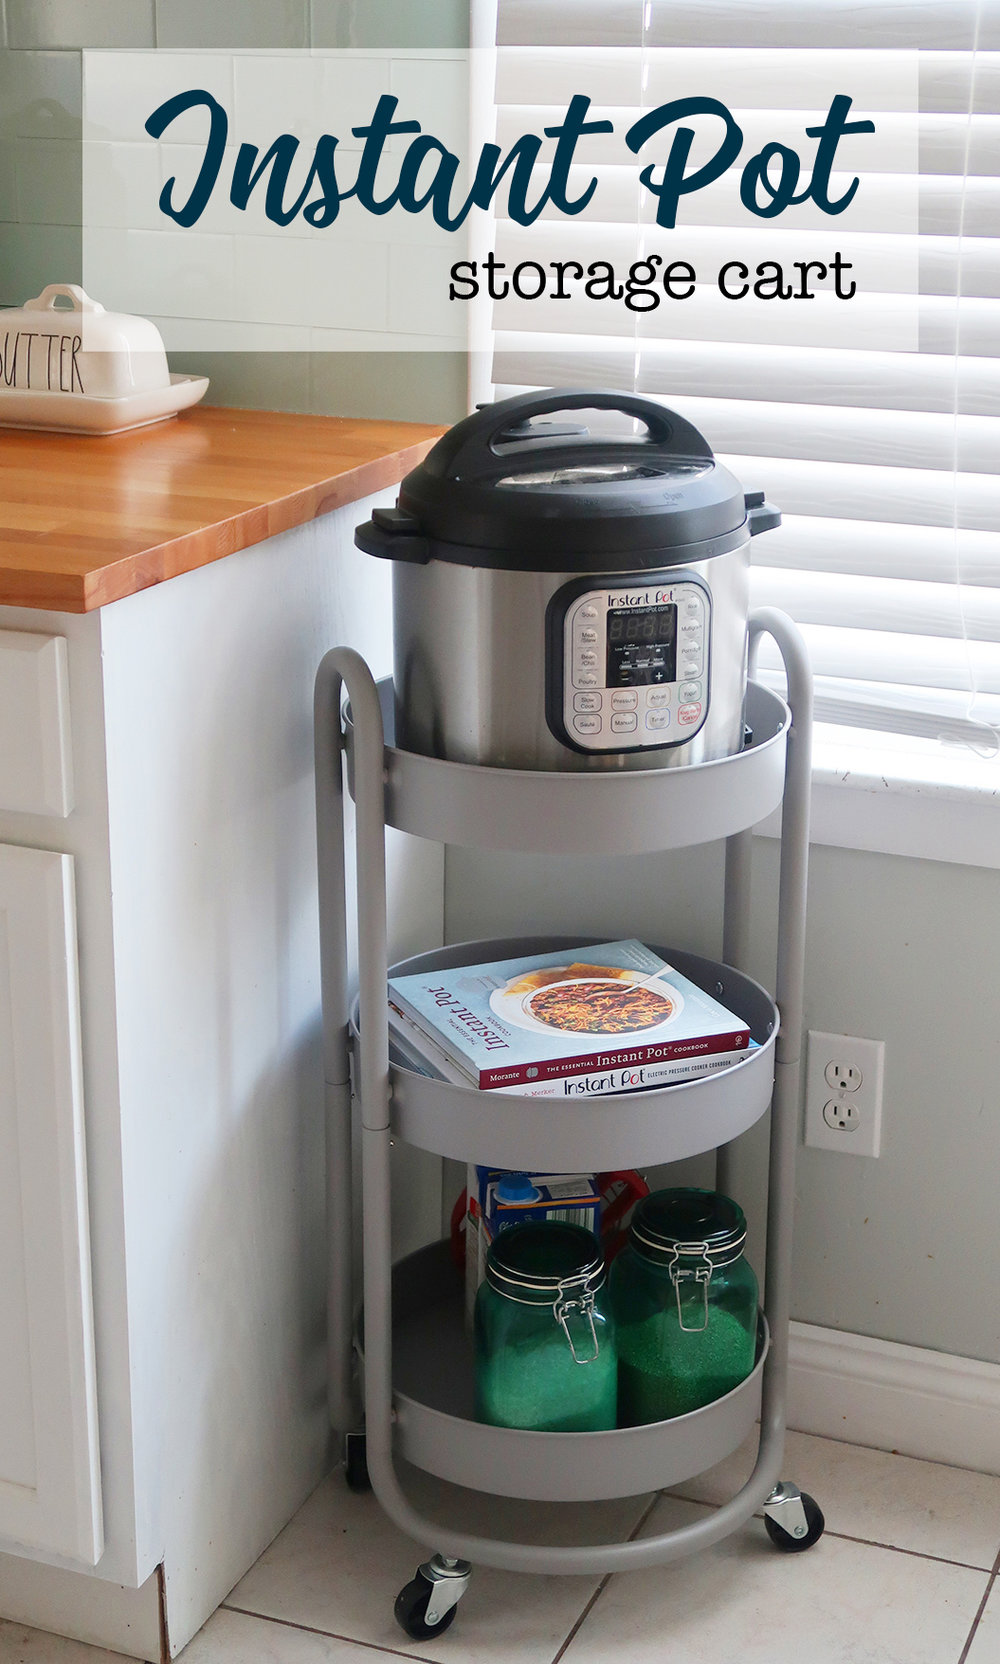 Instant Pot storage cart